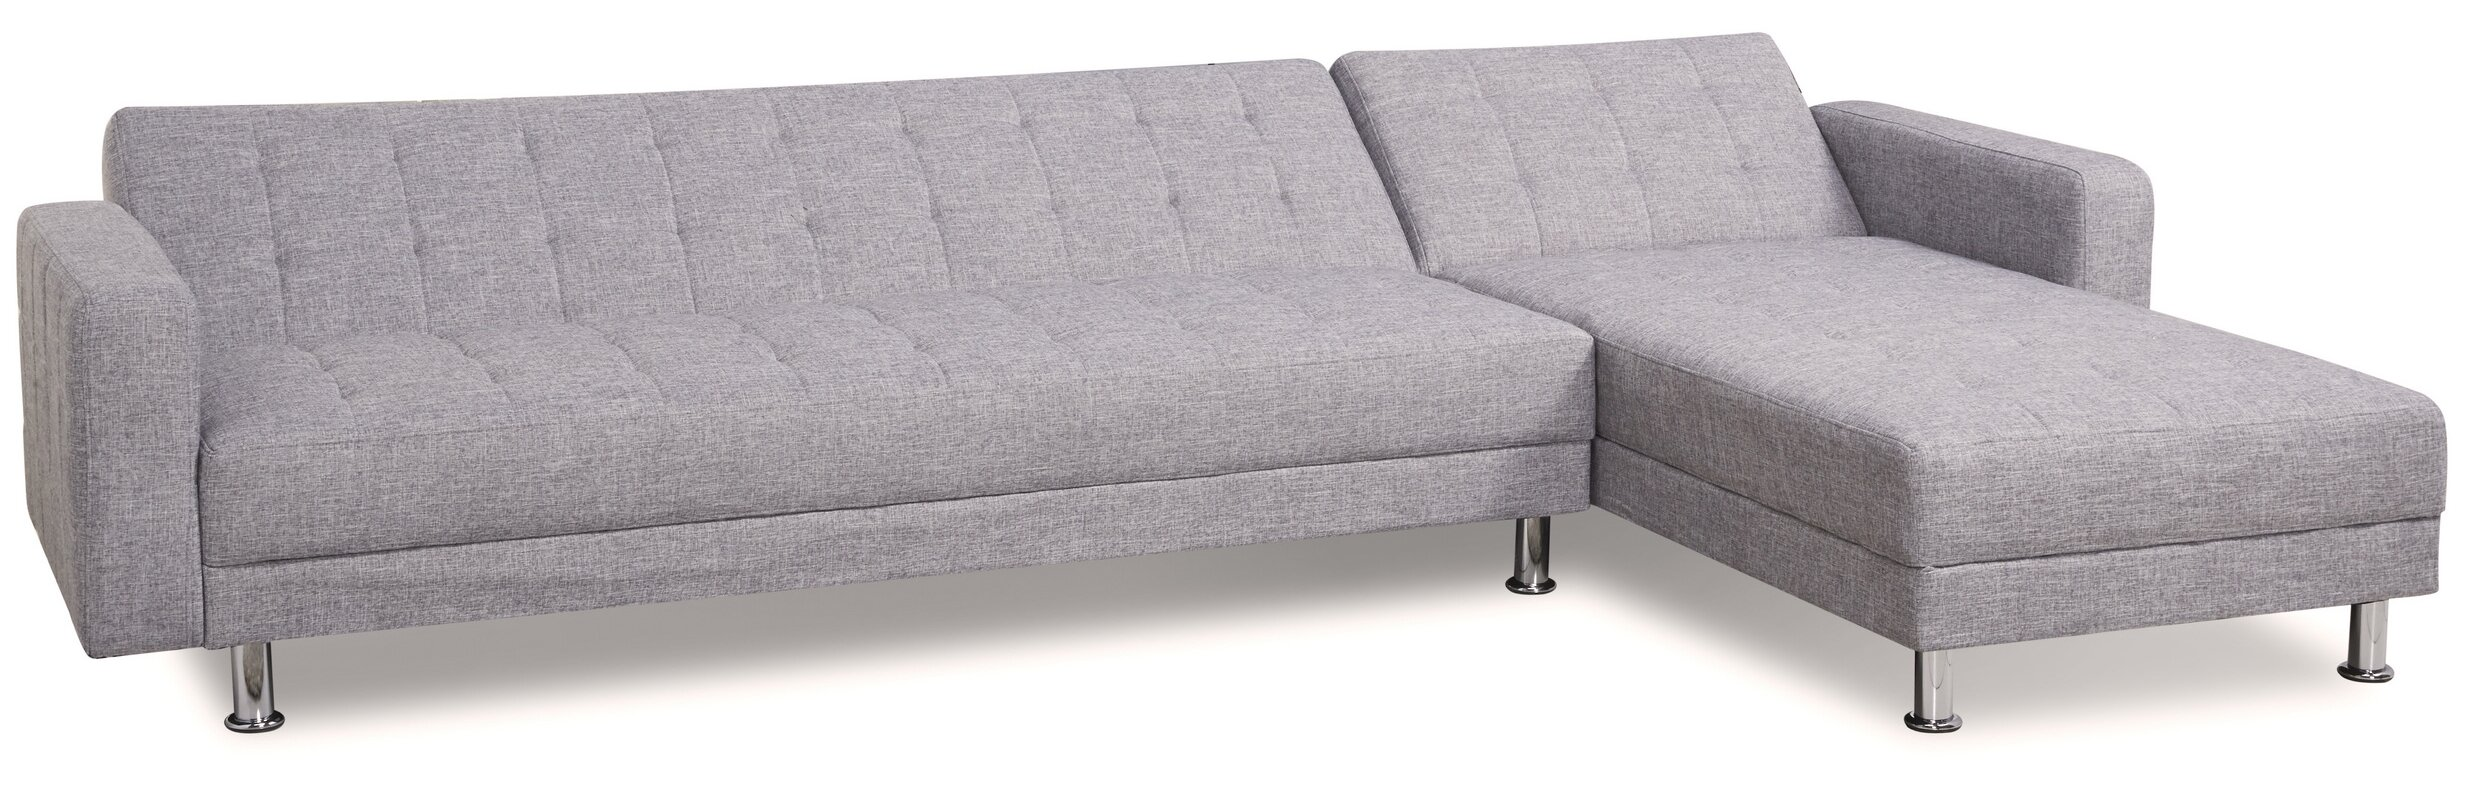 Kaleidoscope Furniture Sleeper Sectional & Reviews